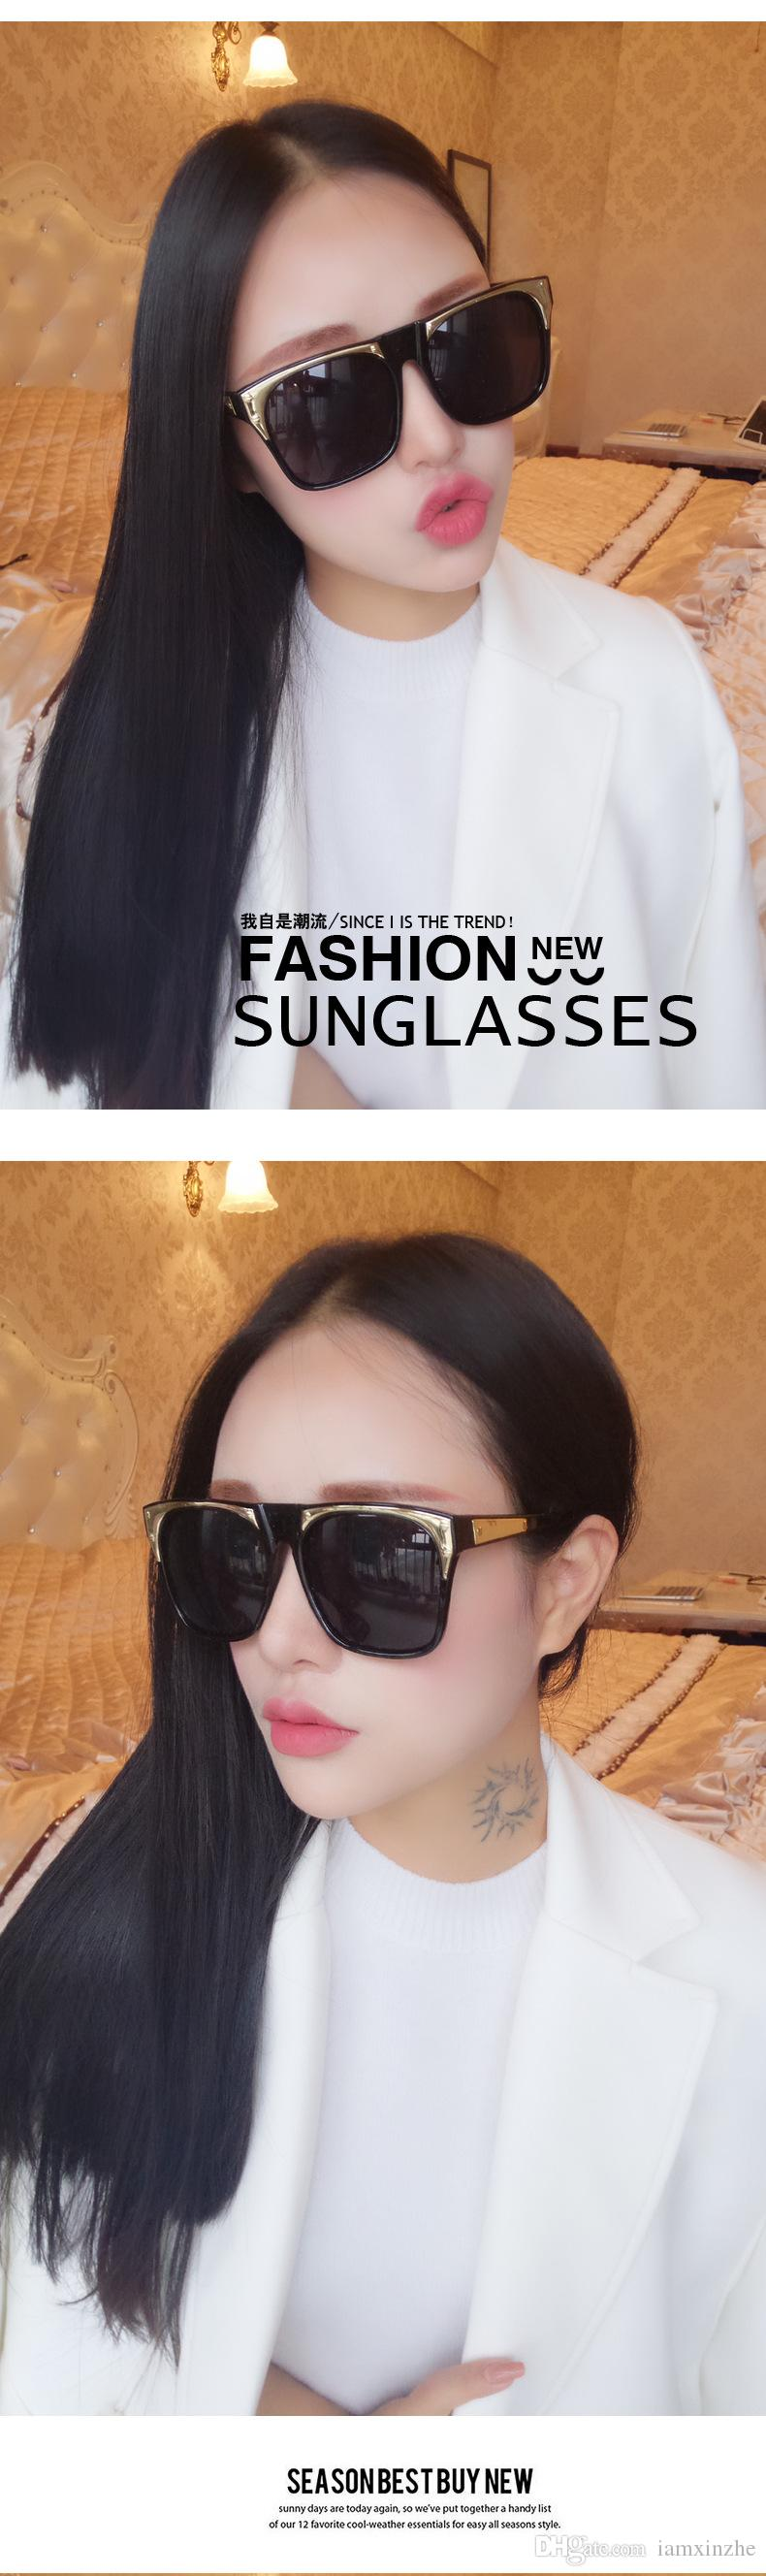 Top quality New street sunglasses fashionable men and women sunglasses color film glasses wholesale with boxes